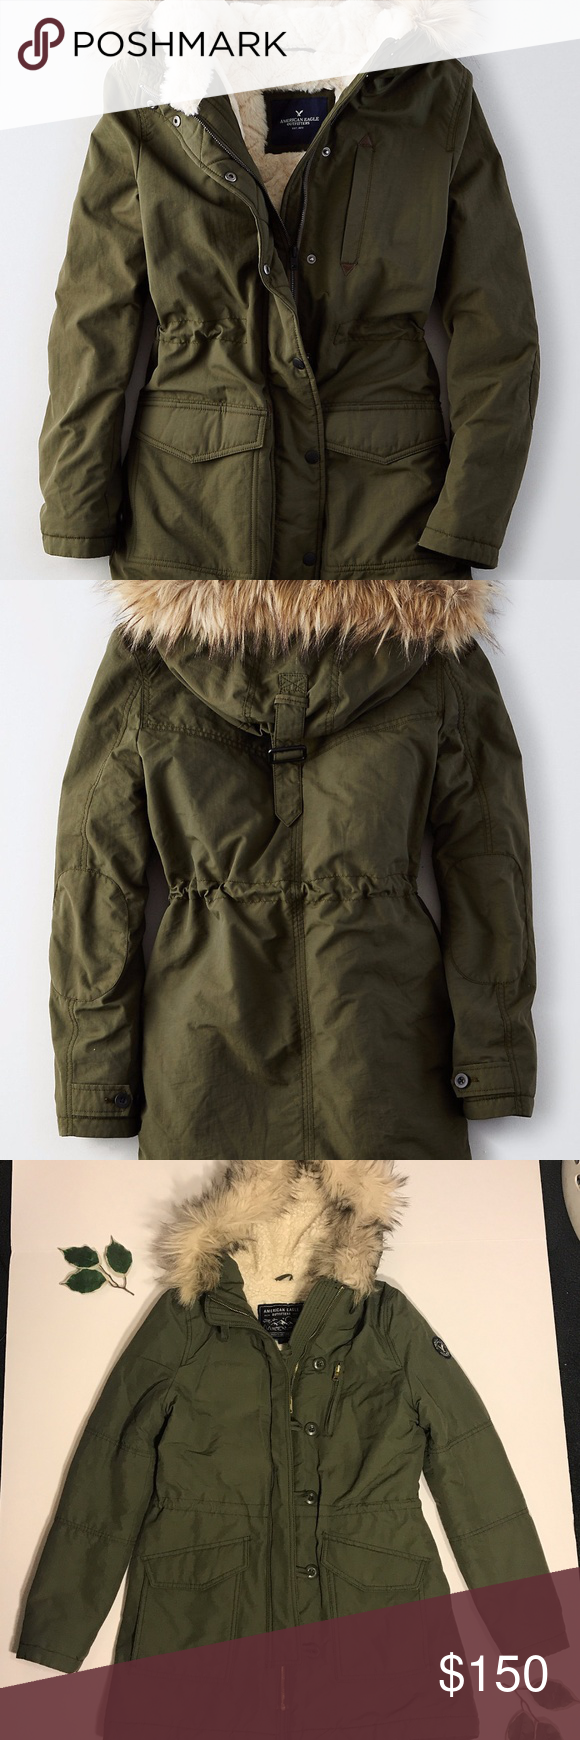 American Eagle Outfitters Army Green Sherpa Coat American Eagle Outfitters Sherpa Coat American Eagle [ 1740 x 580 Pixel ]